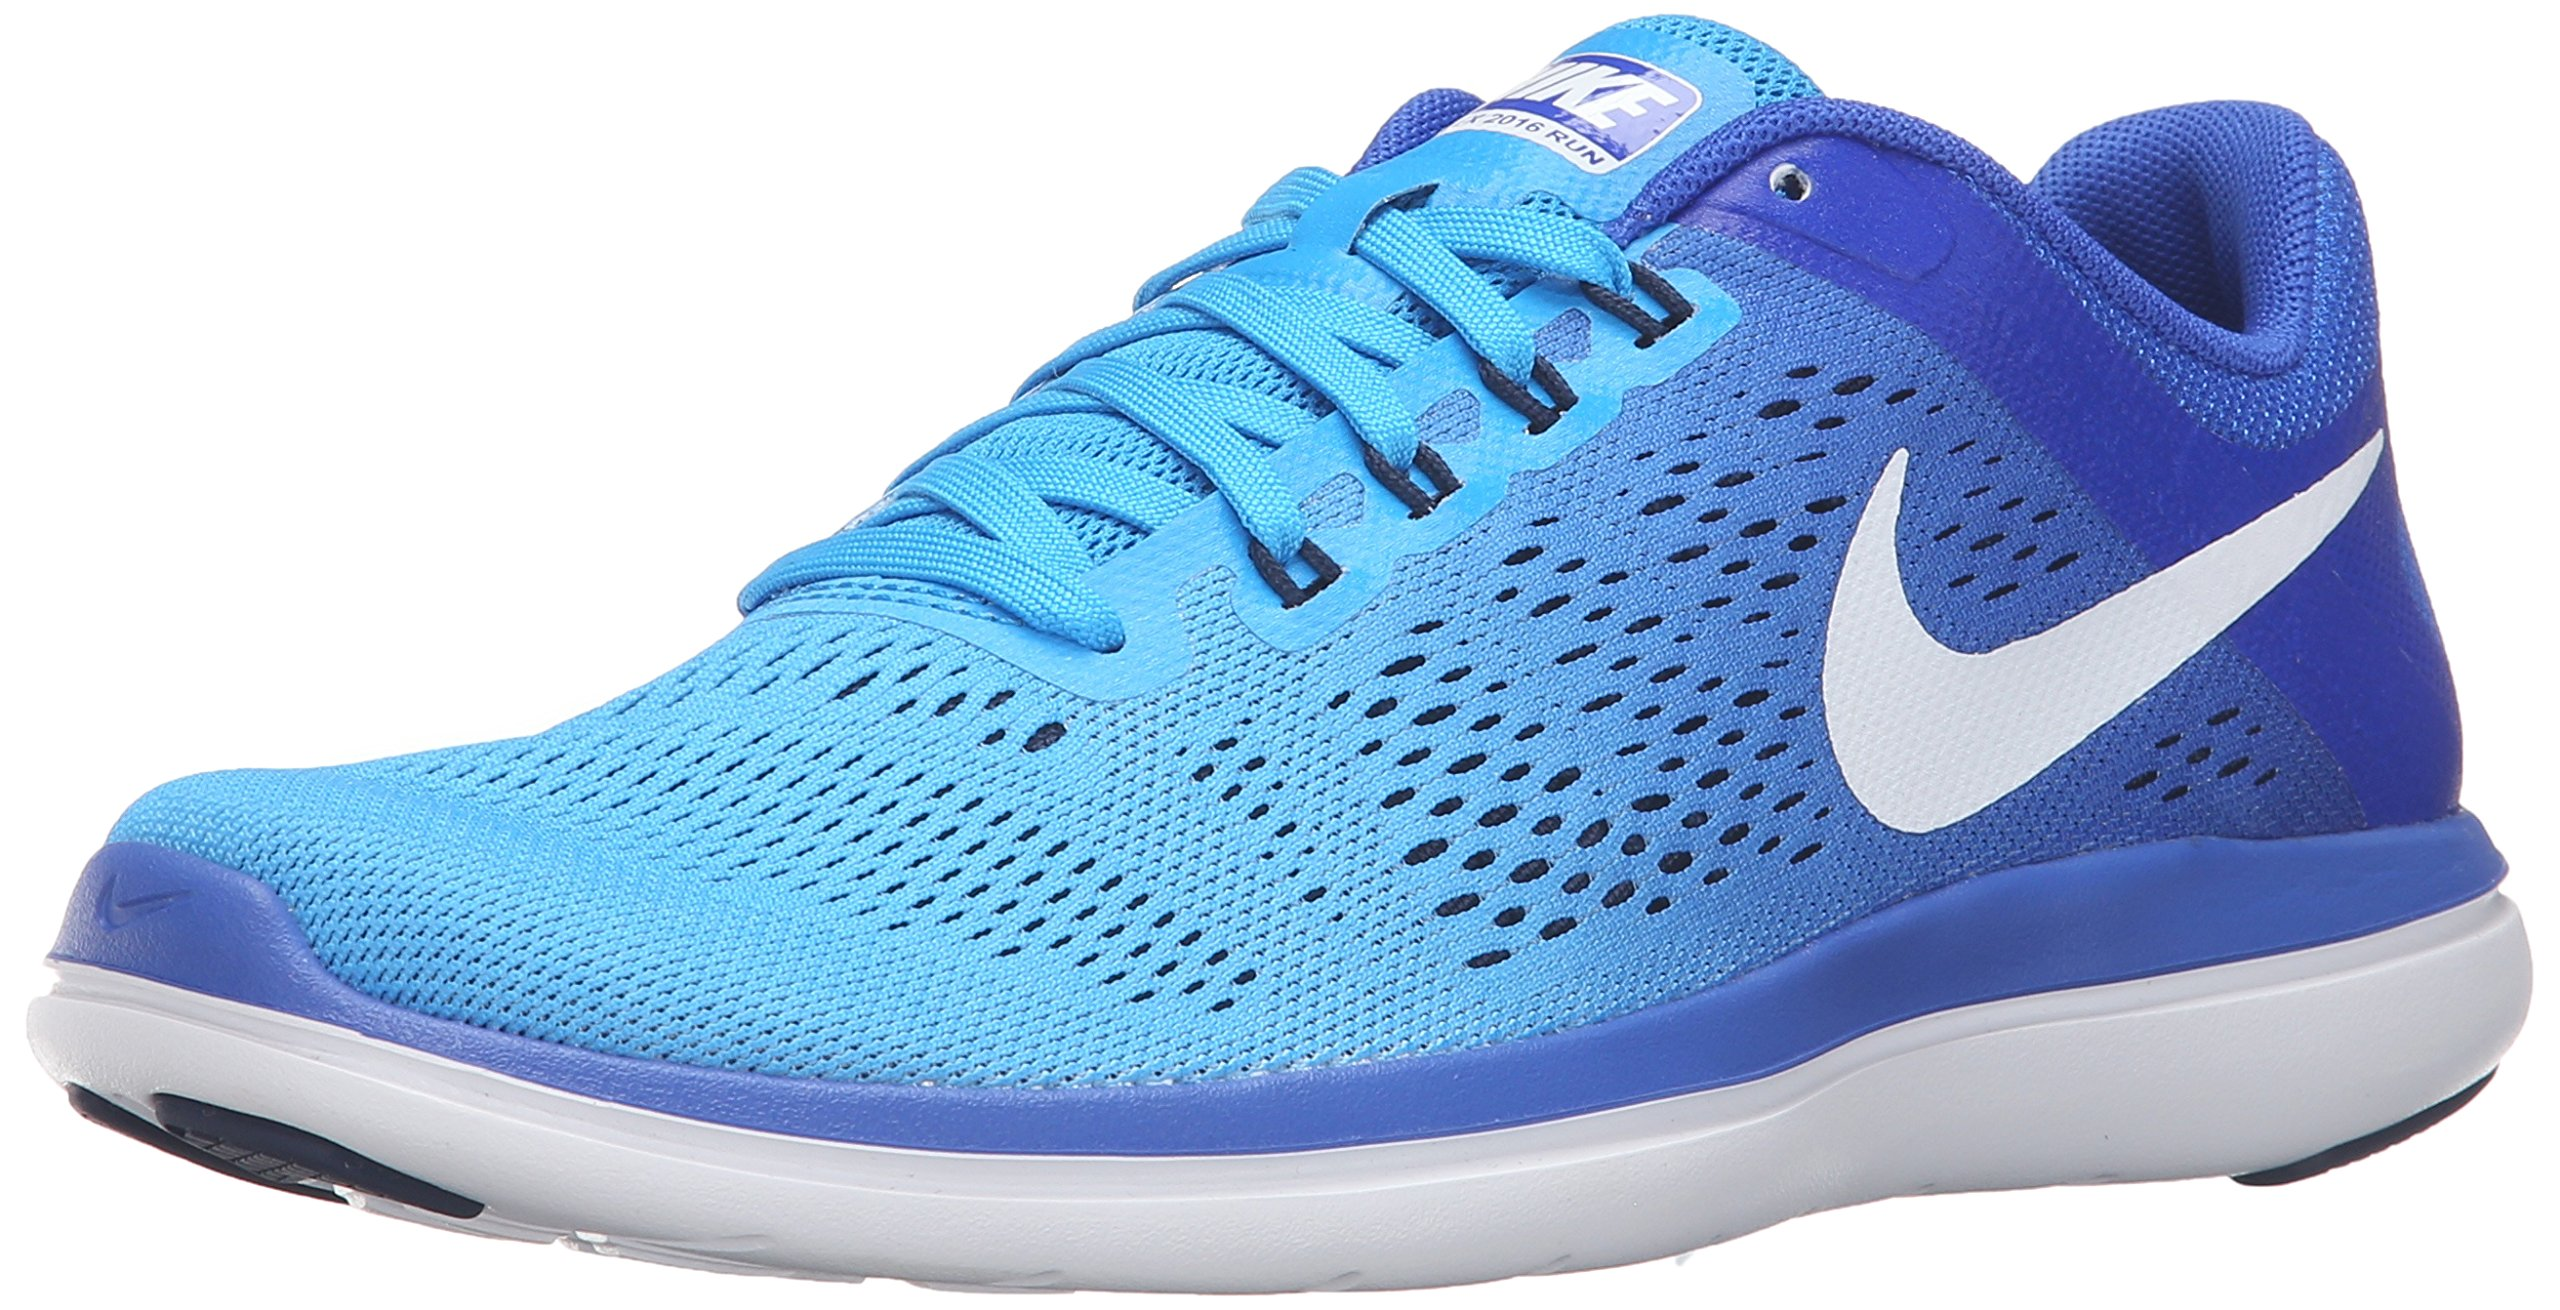 7f6827a925050 Get Quotations · NIKE Women s Flex 2016 Rn Running Shoes